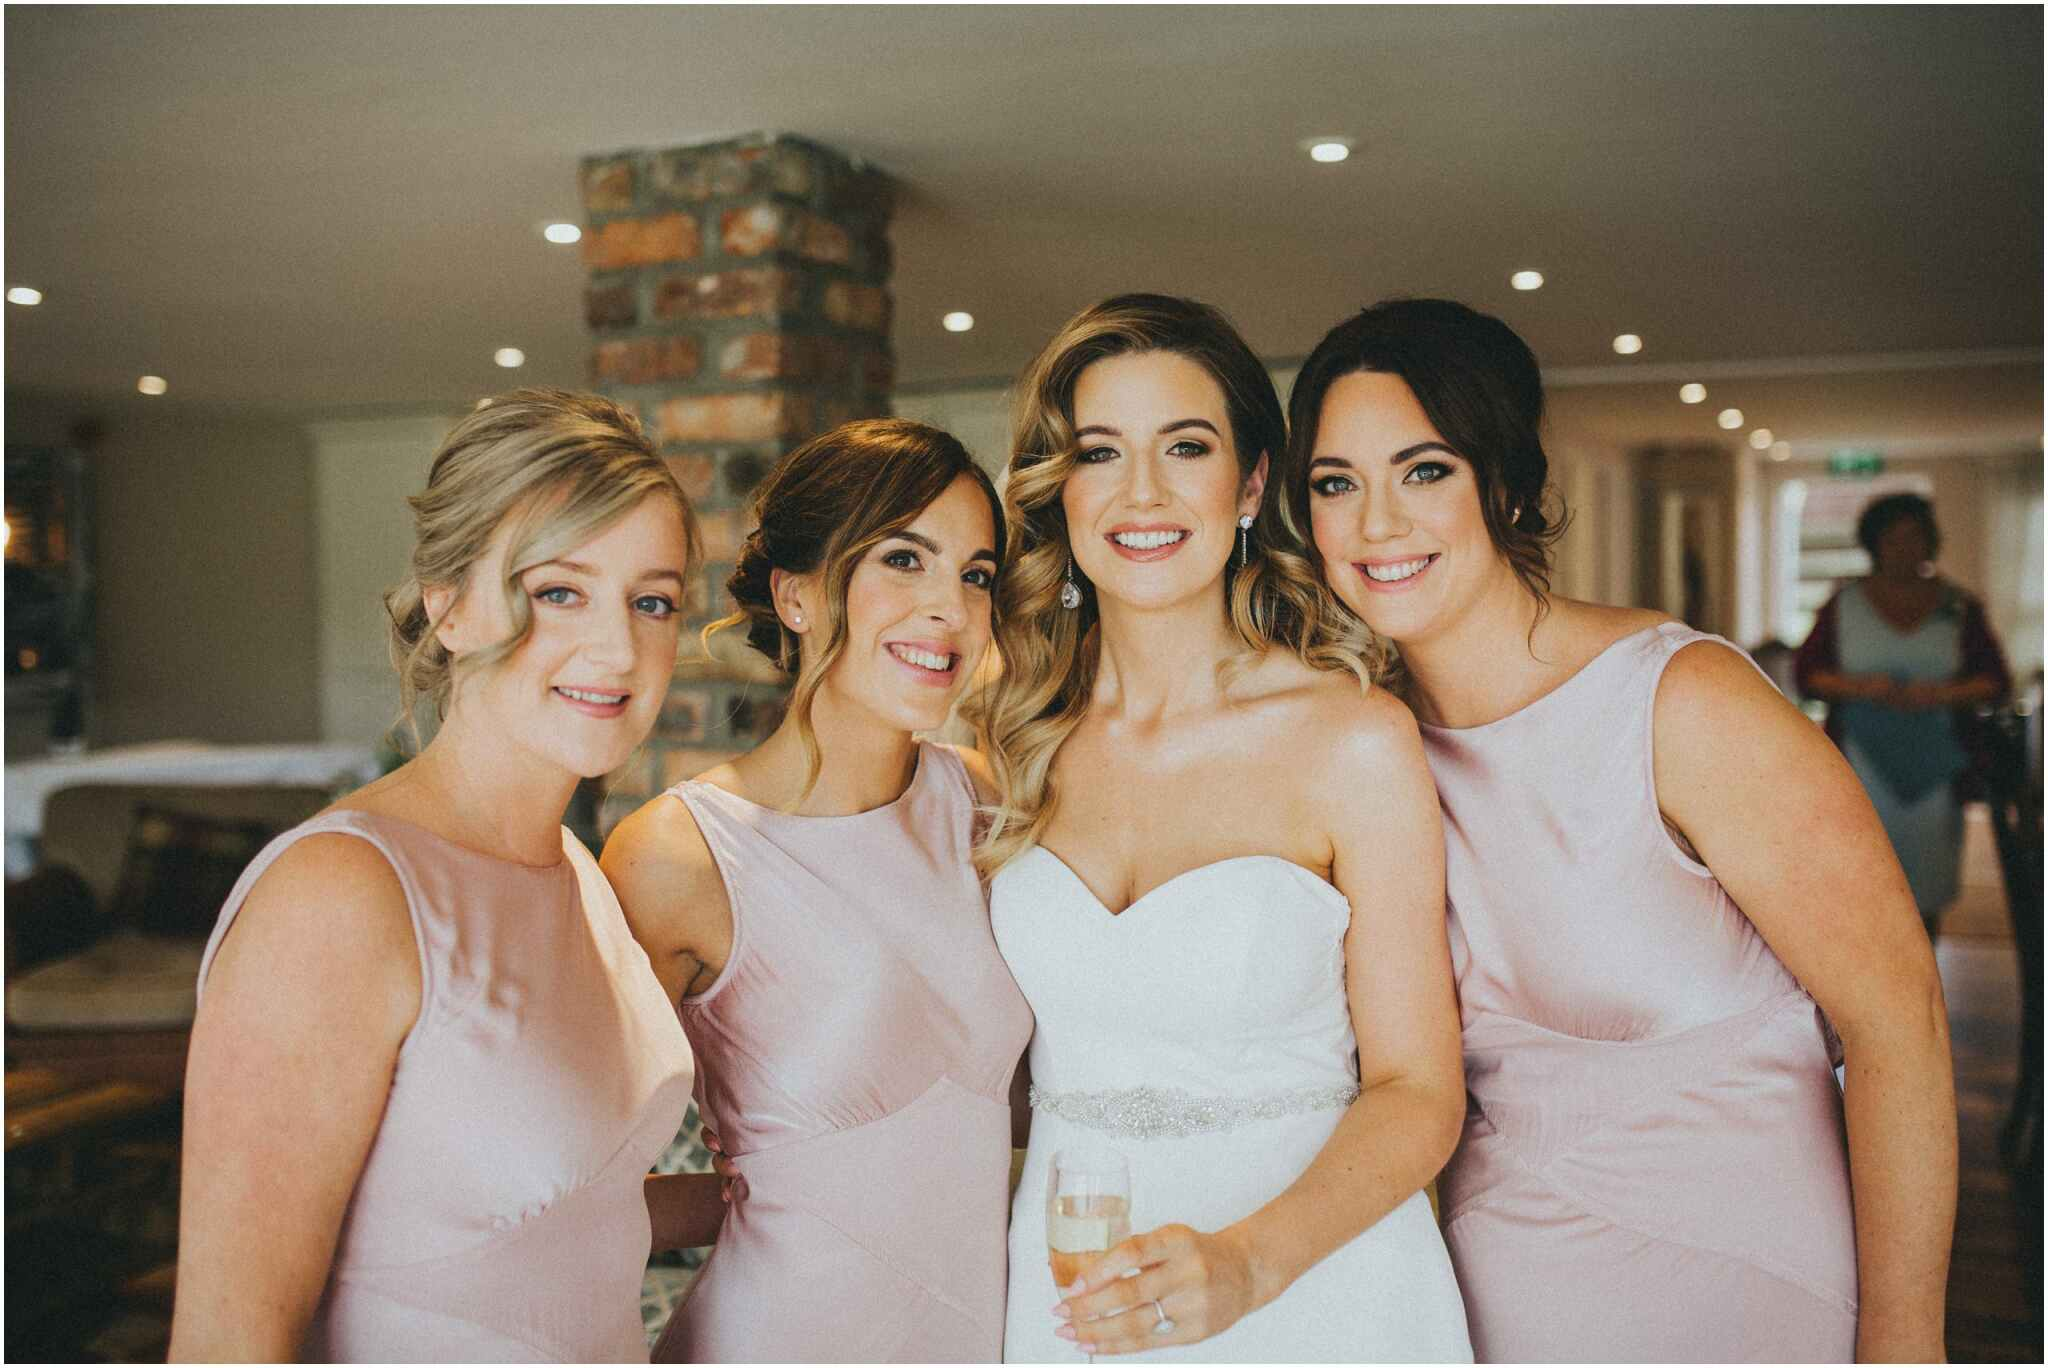 ballymagarvey village wedding 00051 - Fun and Relaxed wedding and elopement photography in Ireland, perfect for adventurous and outdoorsy couples